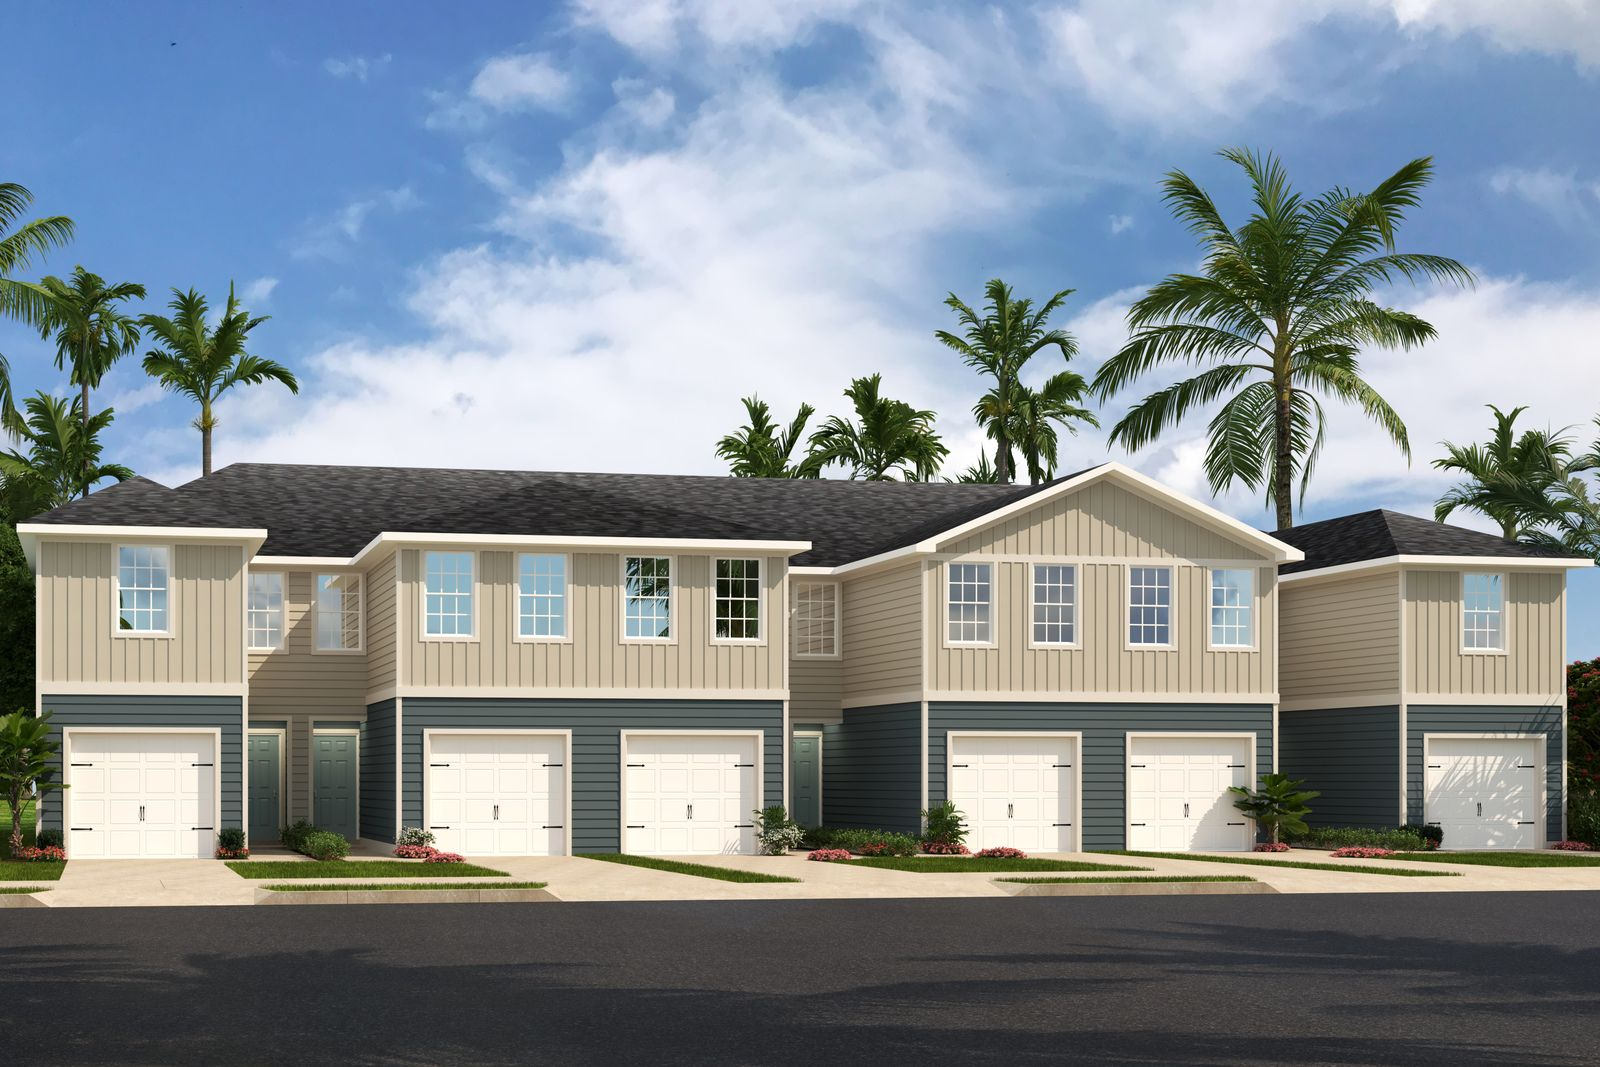 Welcome Home to Creekbend:Own for less than rent in Jacksonville! New construction townhomes affordably priced from the upper $100s with a low monthly payment.Schedule an appointment to learn more.